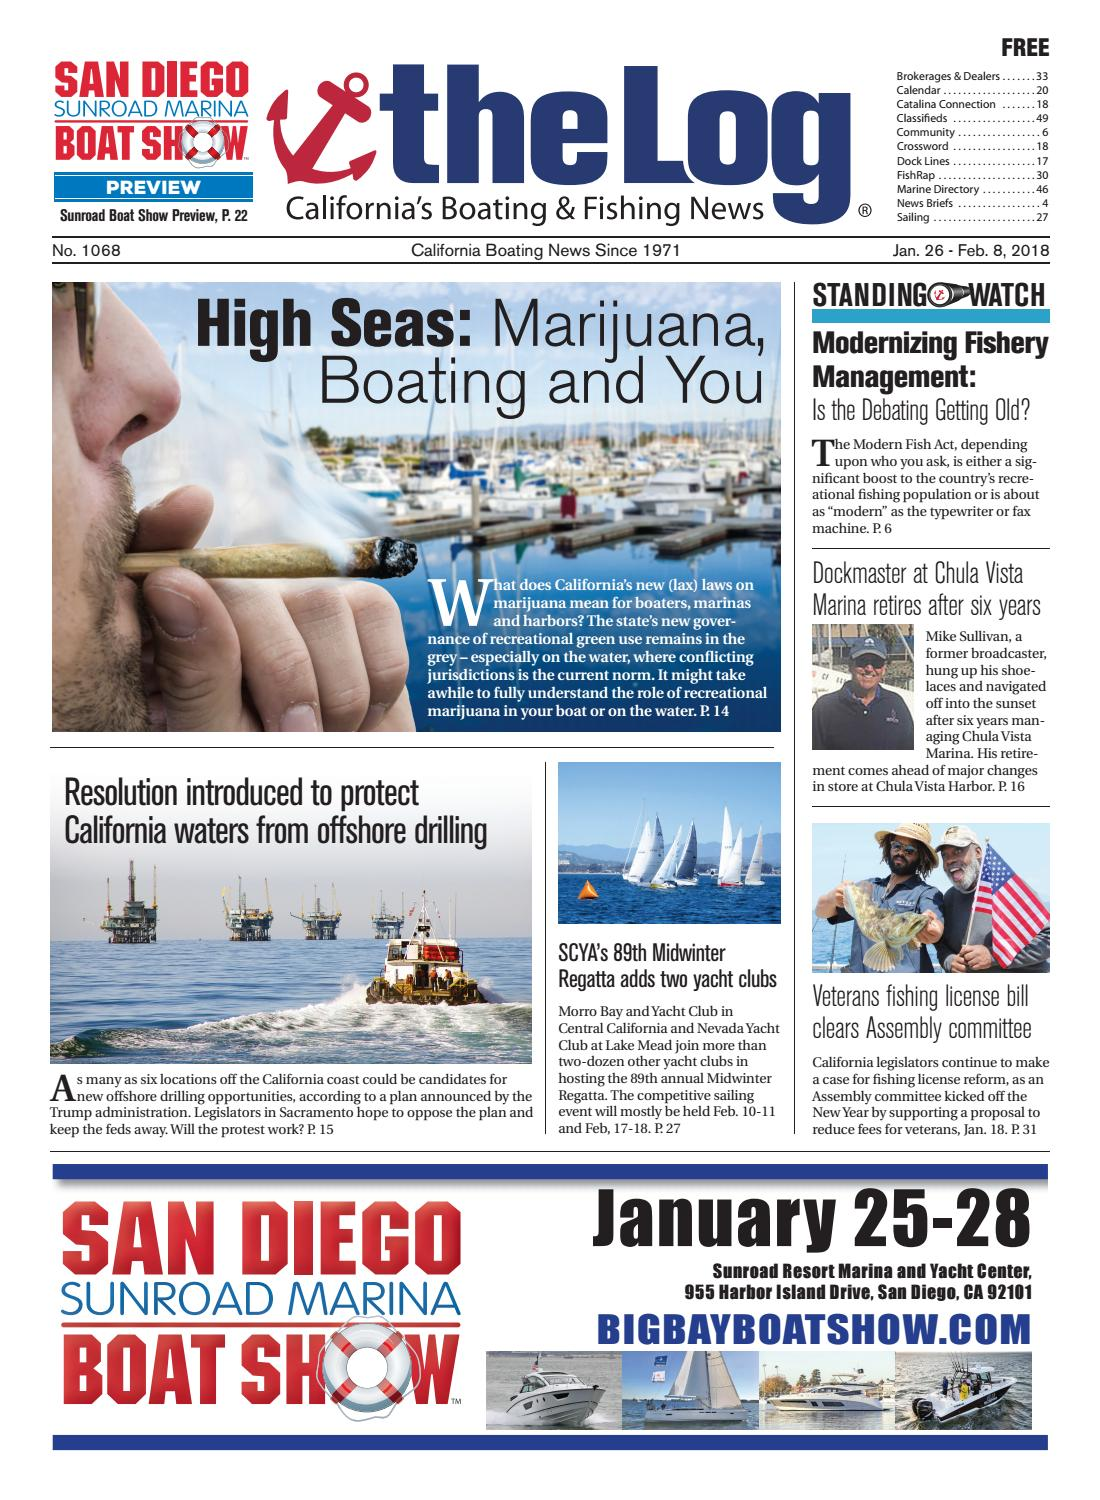 The Log Newspaper January 26 2018 By Duncan Mcintosh Company Issuu Porsche Wds 24 Electrical Wiring Diagram Repair Manual Order